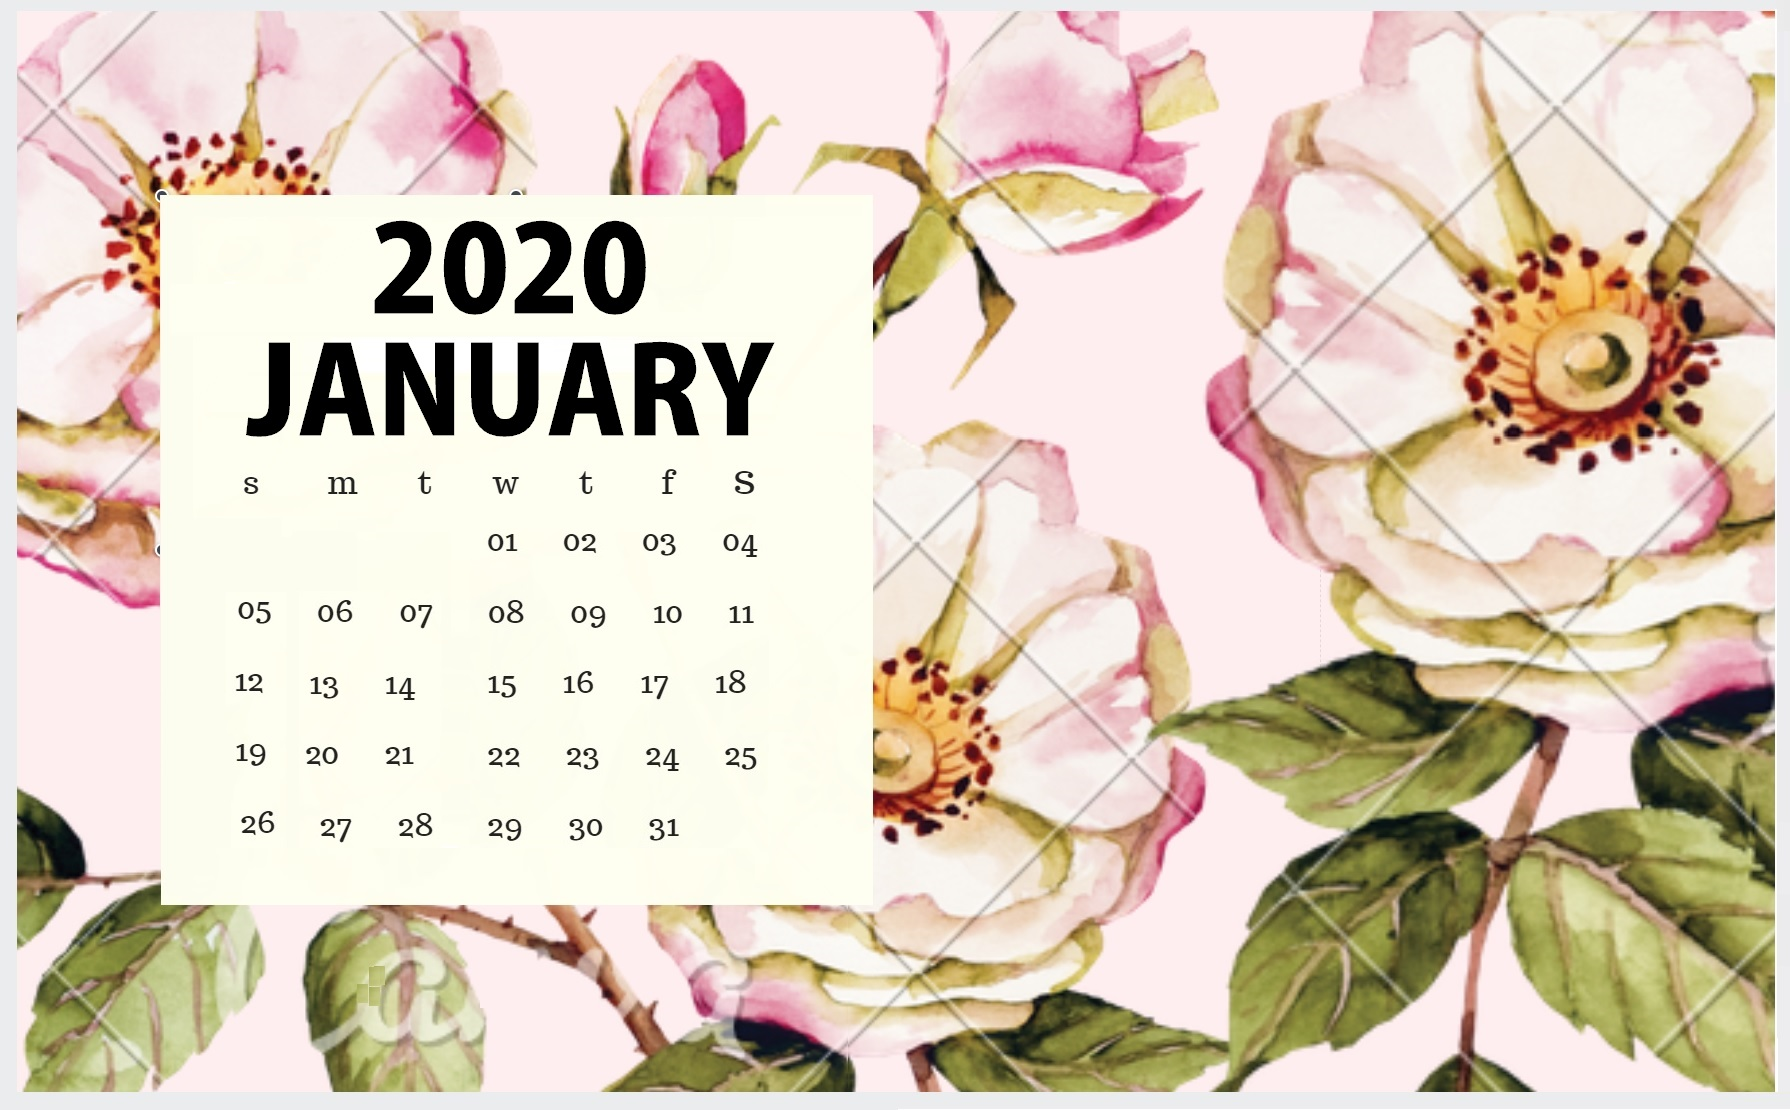 January 2020 Floral Calendar Wallpaper For Desktop